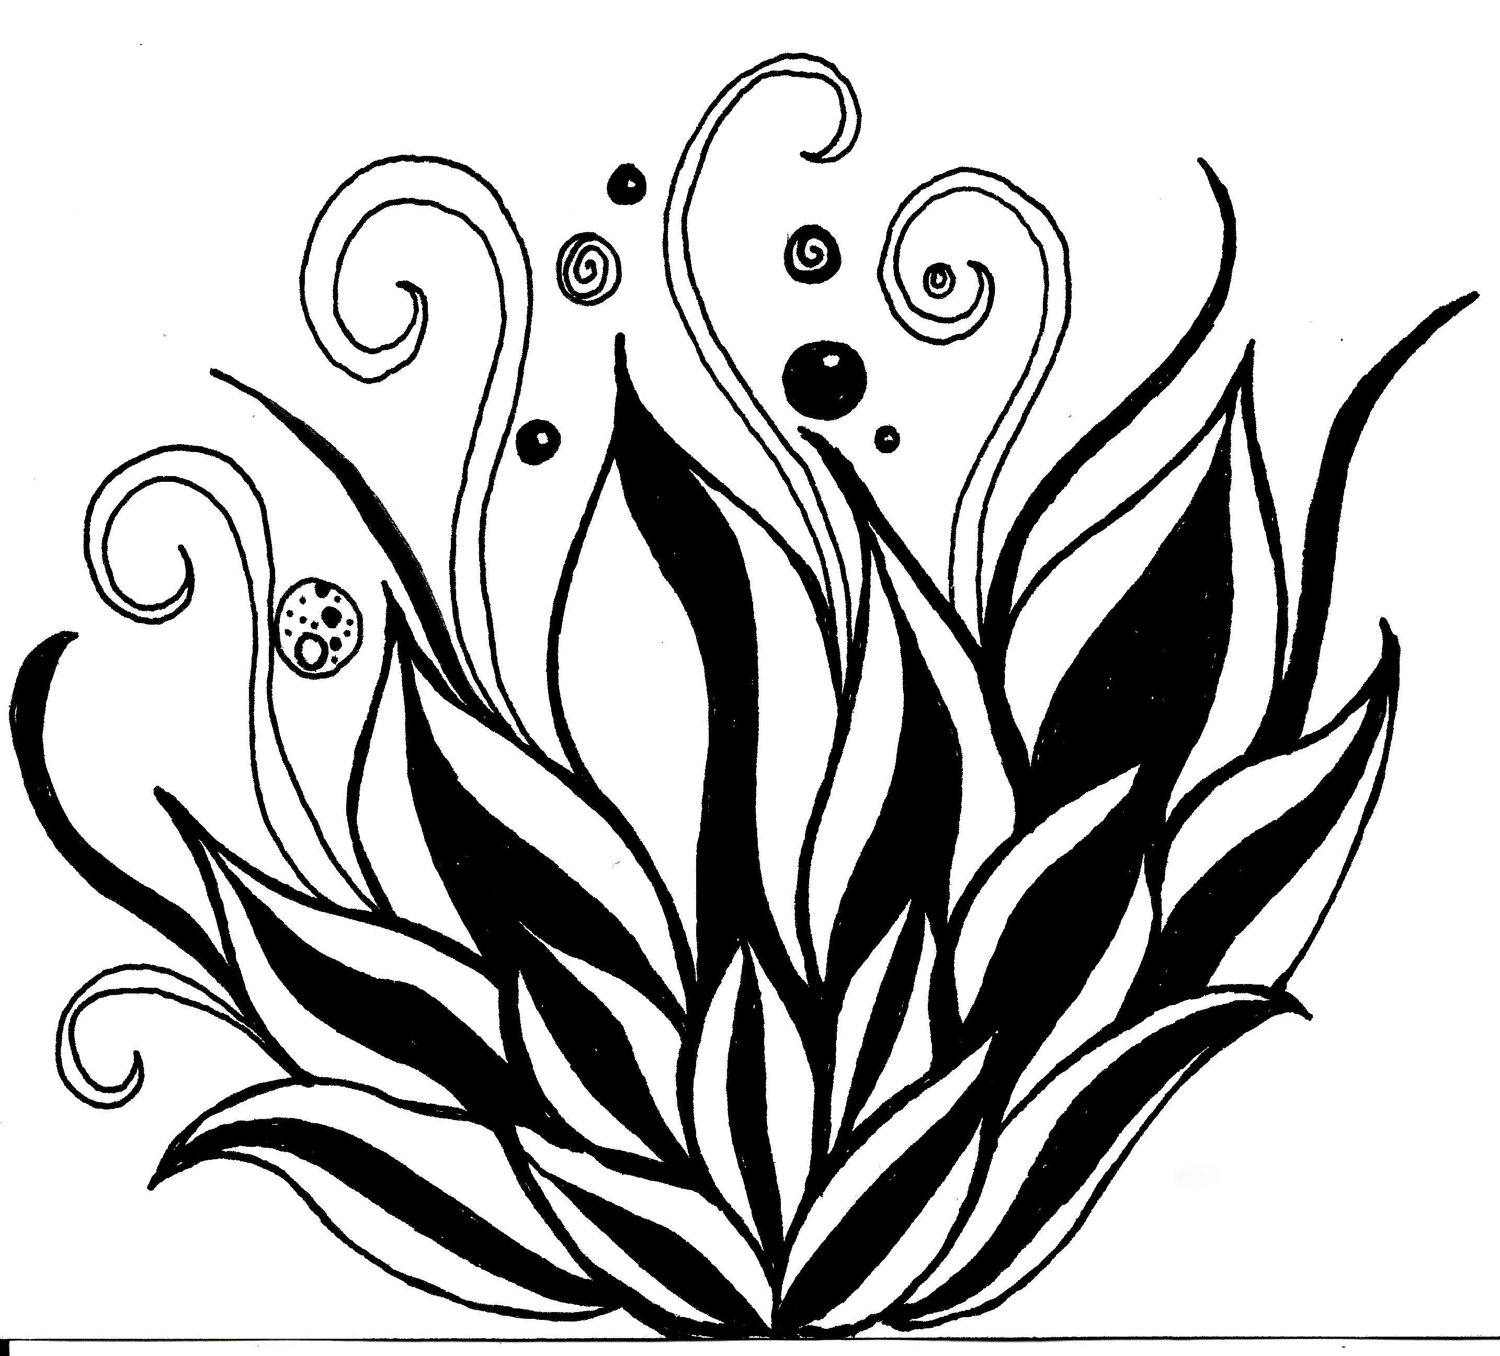 1500x1356 Lotus Flower Line Drawing Cliparts Co Flowers For Black And White